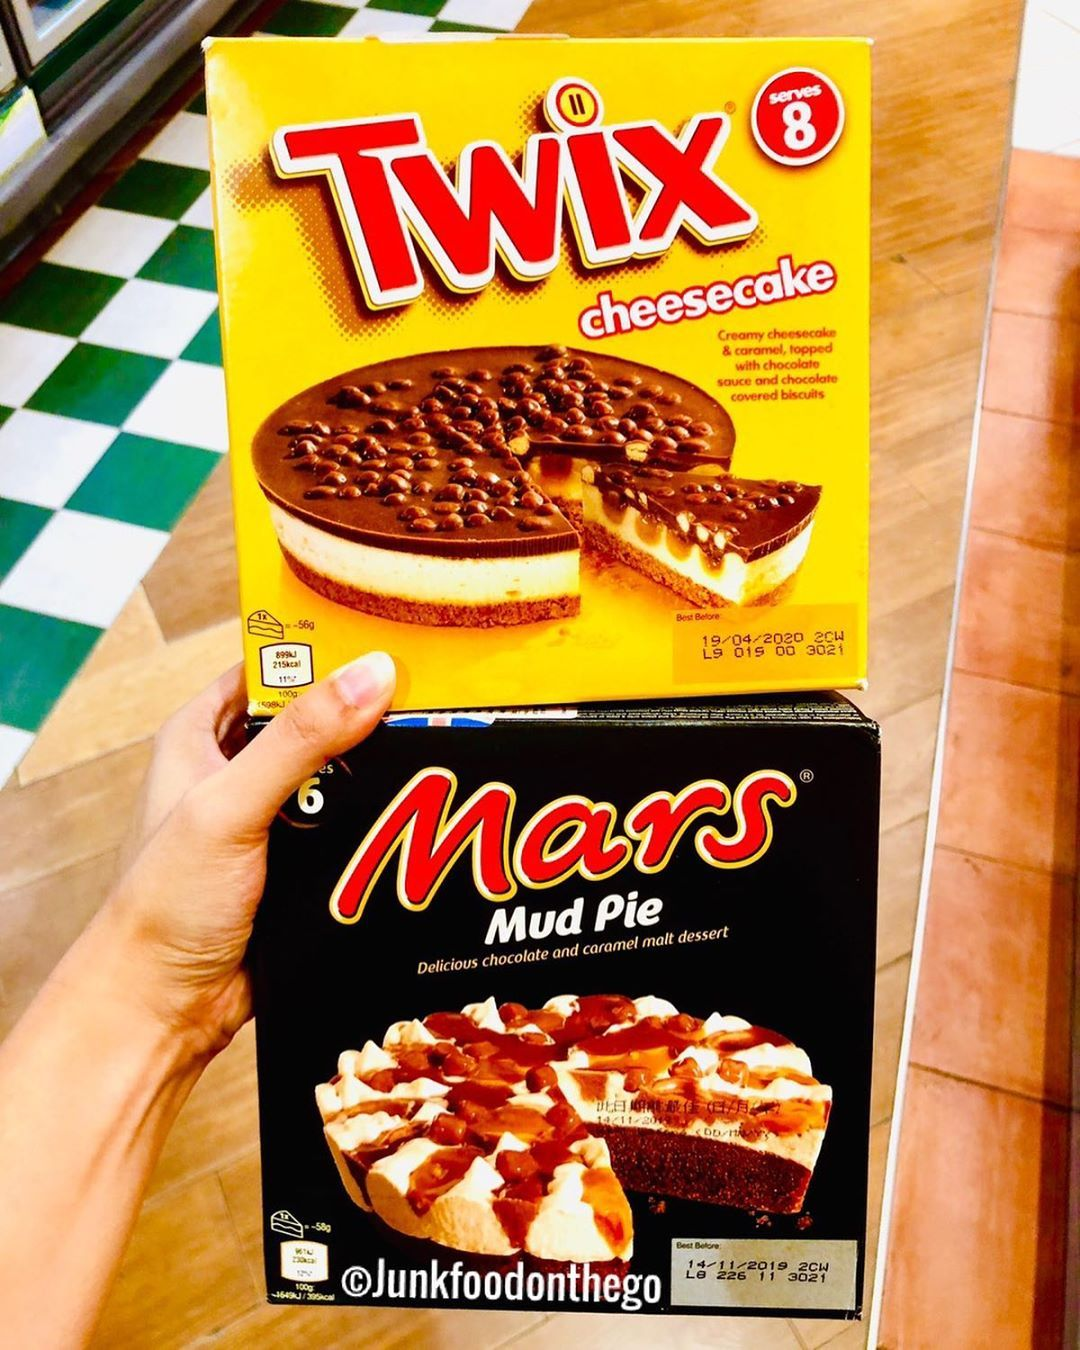 Twix Is Selling Cheesecakes That Serve 8 People